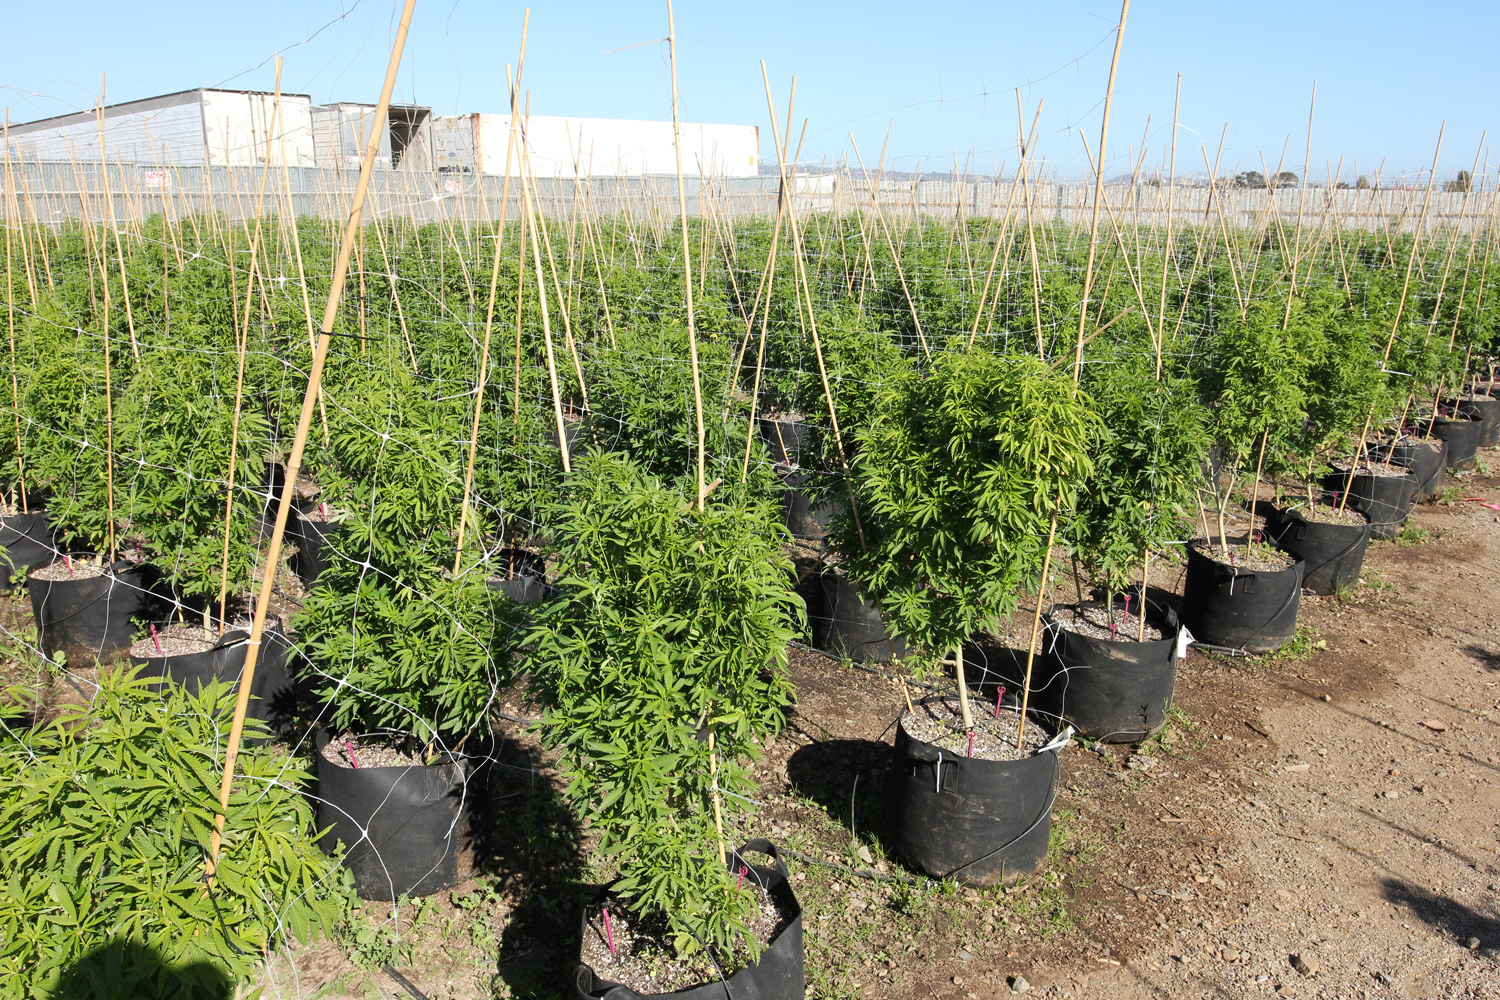 Soon after placement, however, the marijuana plants started to look better. New growth, that is, the branches and leaves, have a fine field-green color and are far larger than indoor-grown foliage.